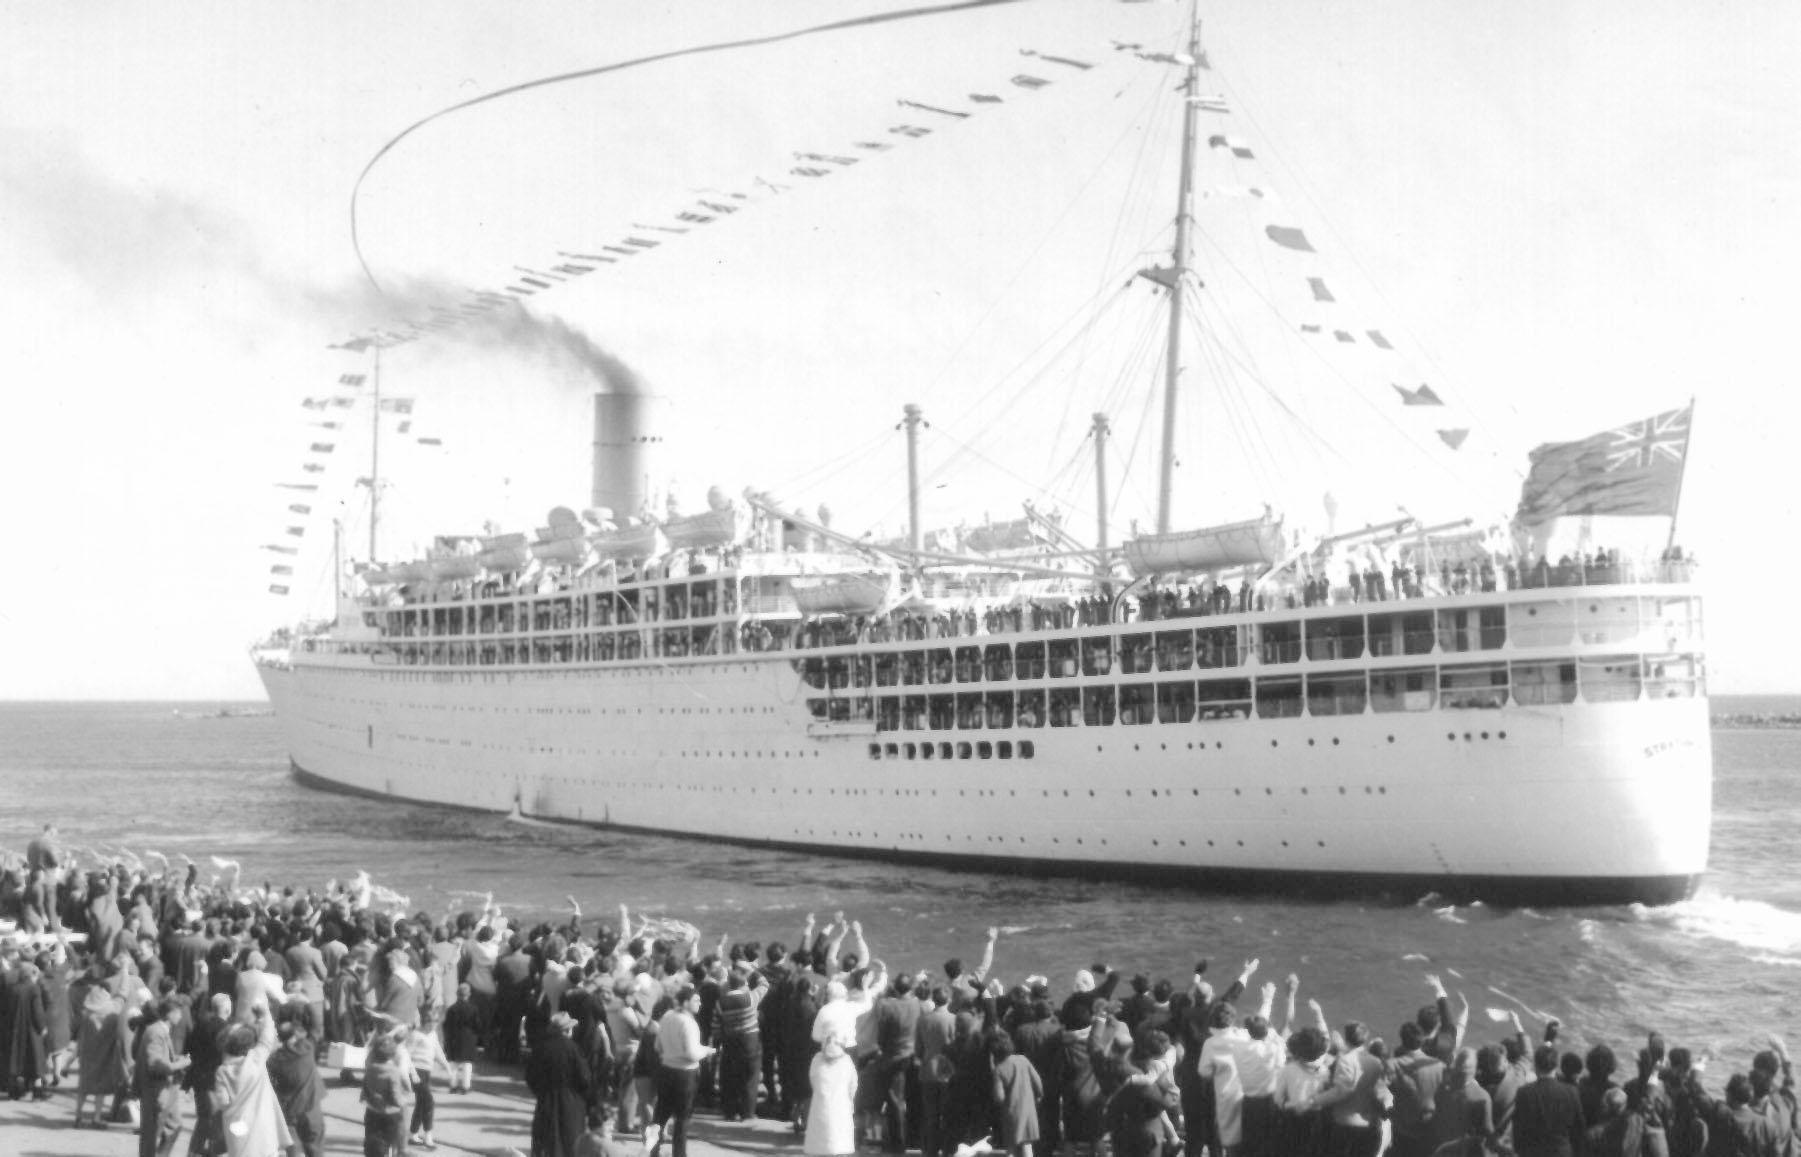 Built by Vickers-Armstrong Ltd, Barrow-In-Furness, England.  Launched on 4 April 1935 by the Duchess Of York and completed in September 1935, made her inaugural voyage on 27 September 1935 from London - Canary Islands. Base Port - London Gross Tonnage: